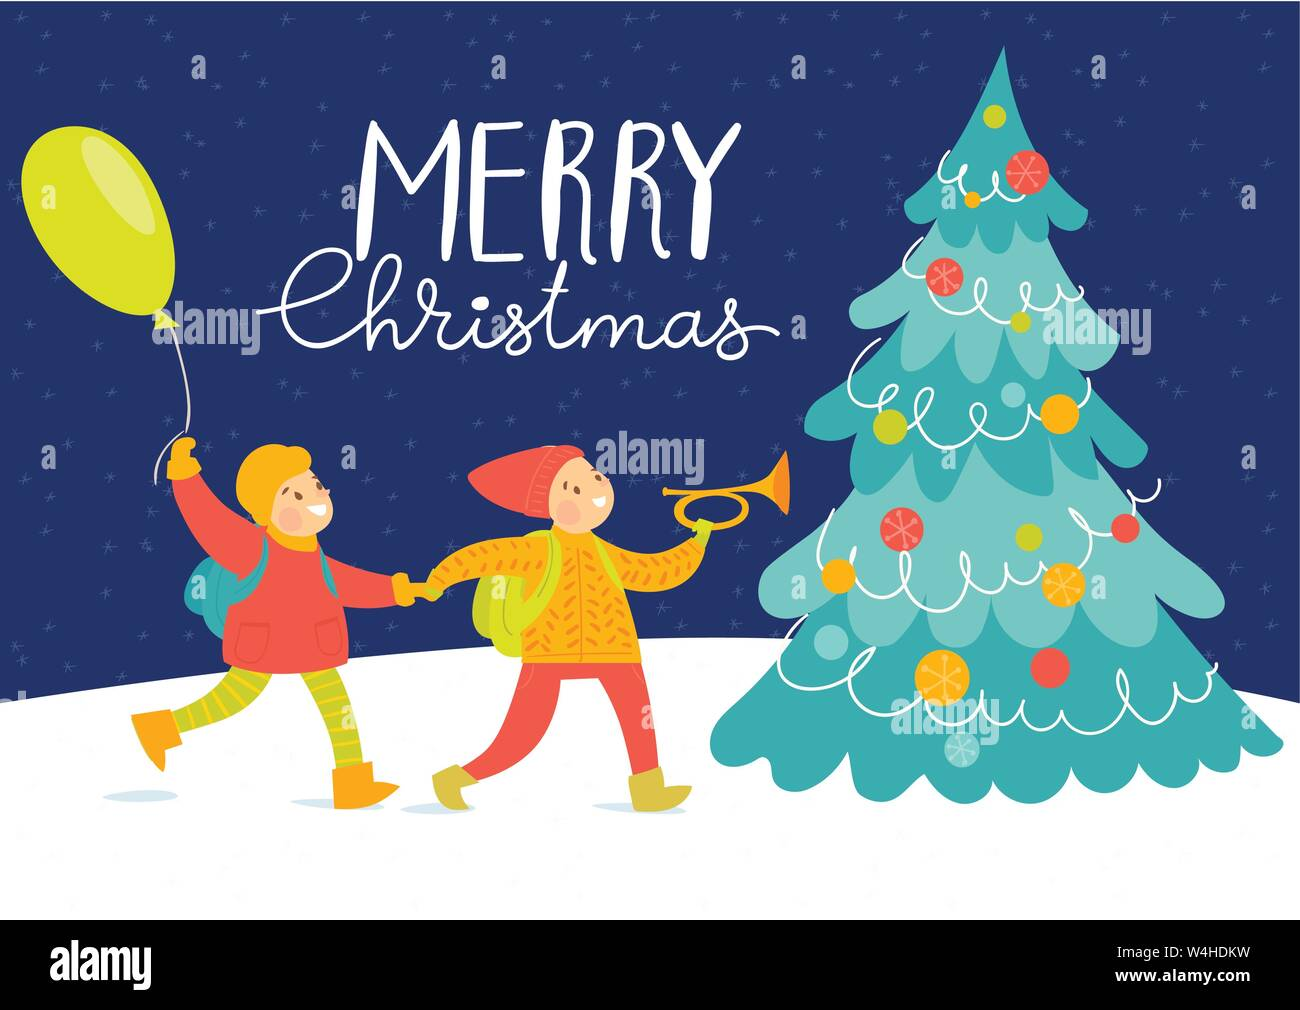 Mery Christmas.Mery Christmas Stock Photos Mery Christmas Stock Images